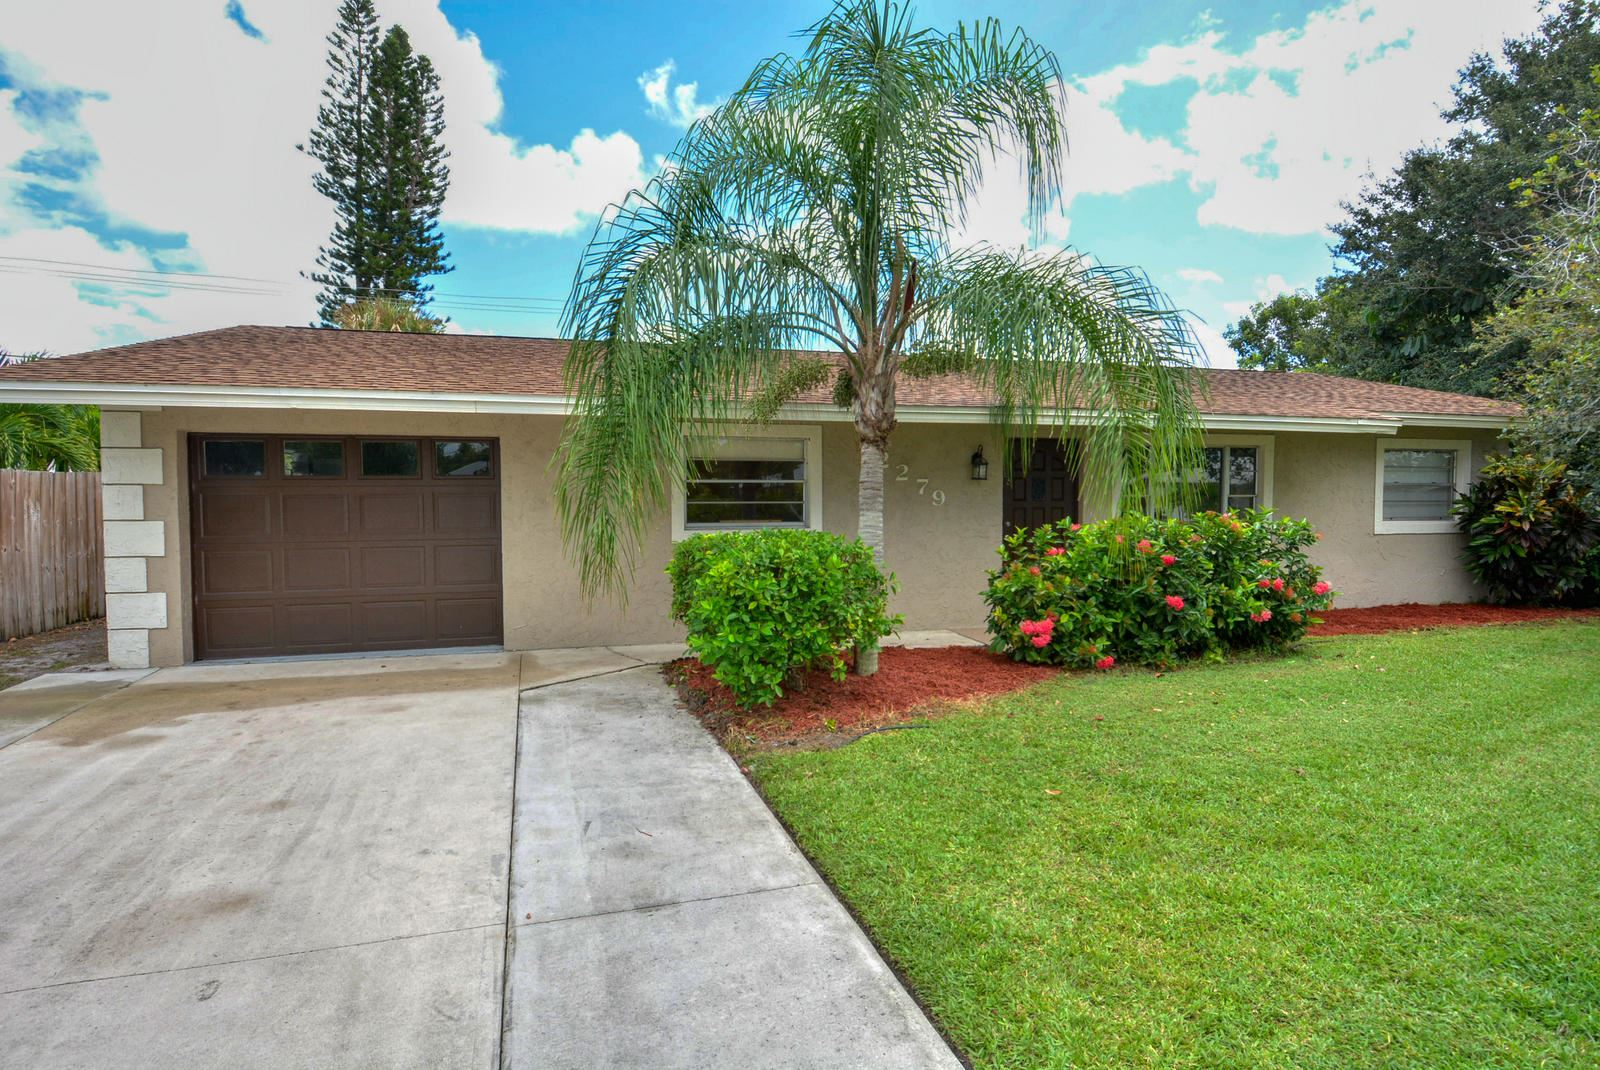 2279 NE 13th Court, Jensen Beach, FL 34957 - #: RX-10653456